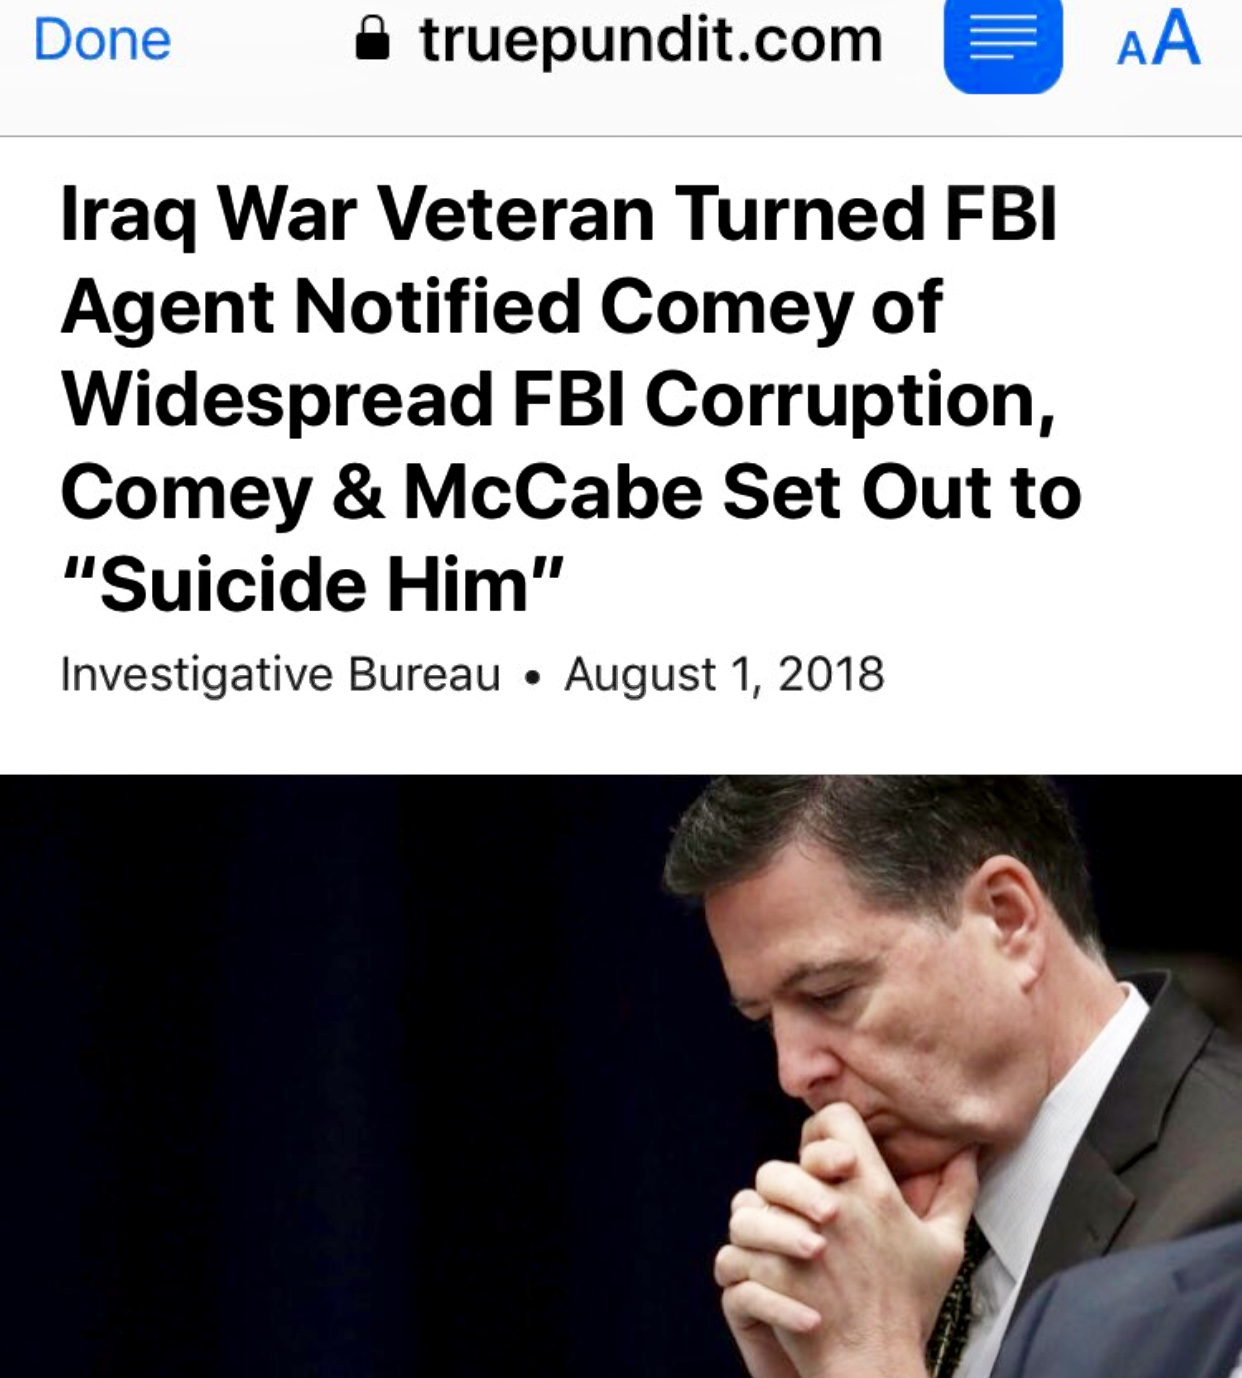 "Iraq War Veteran Turned FBI Agent Notified Comey of Widespread FBI Corruption, Comey & McCabe Set Out to ""Suicide Him"" – True Pundit"